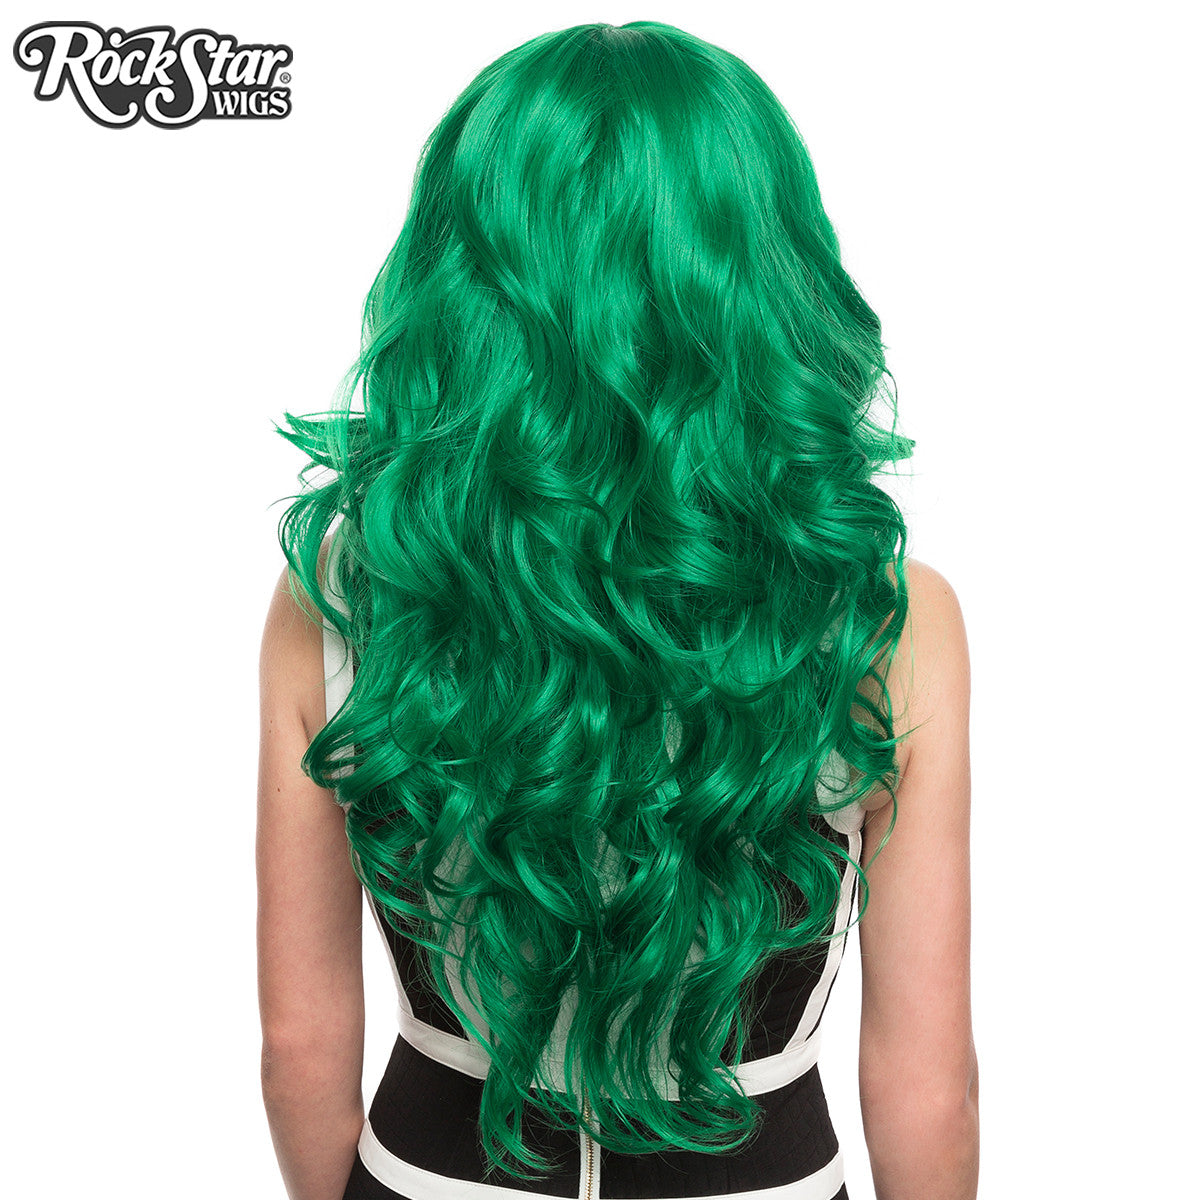 RockStar Wigs® <br> Farrah™ Collection - Emerald Jade Green -00454